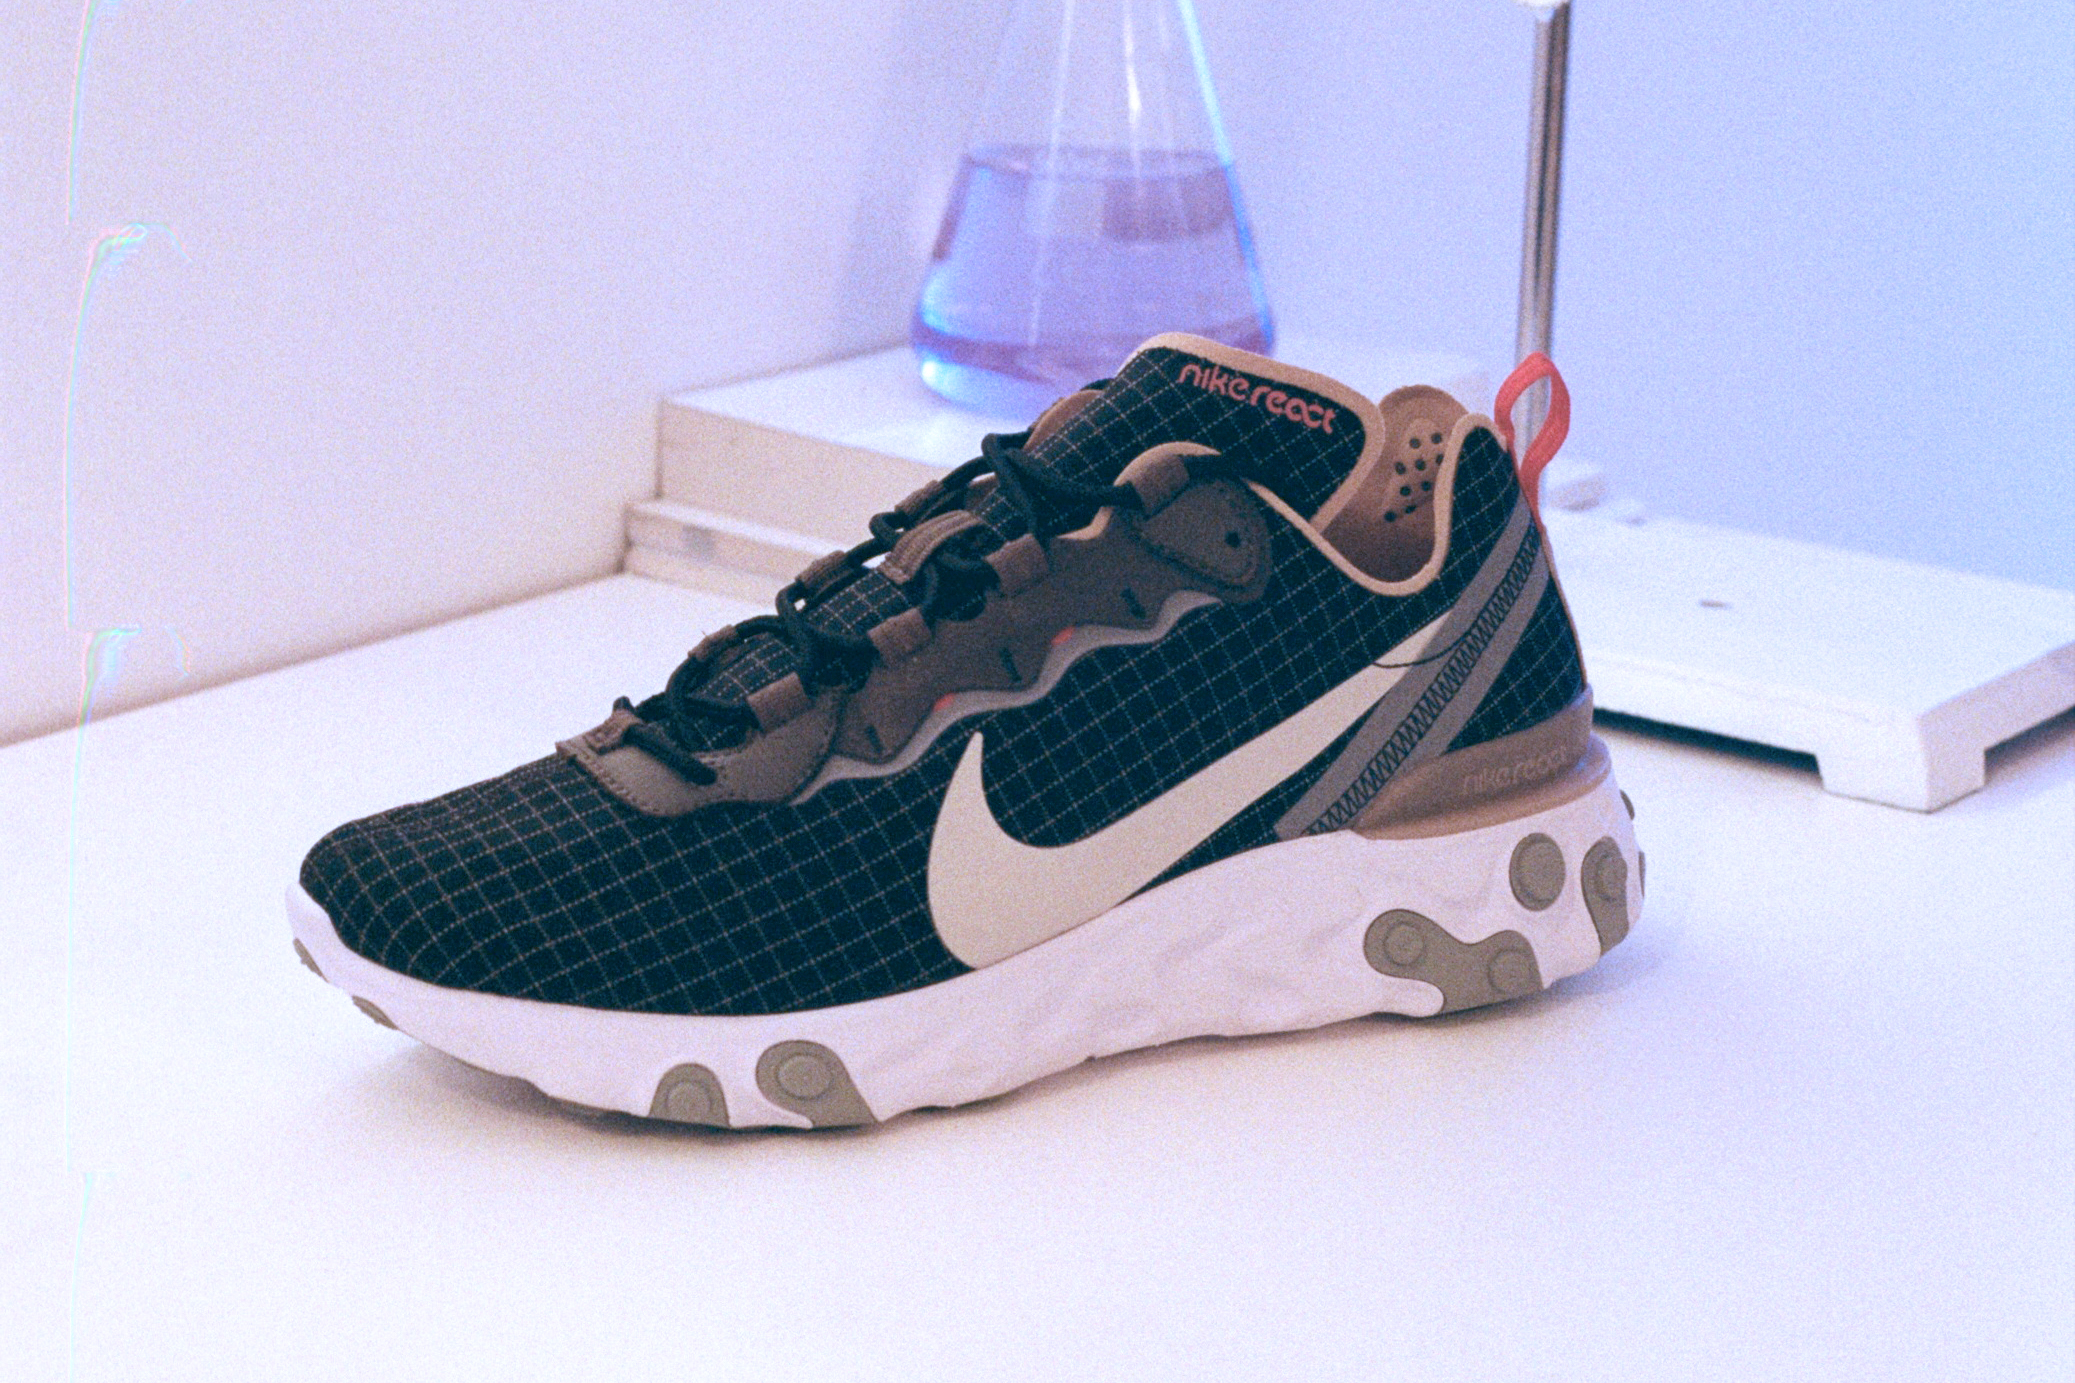 detailed look 97a00 2700c Following the hugely successful introduction of the Nike Element 87 to the  sneaker industry (undoubtedly one of the best shoes to come out this year),  ...